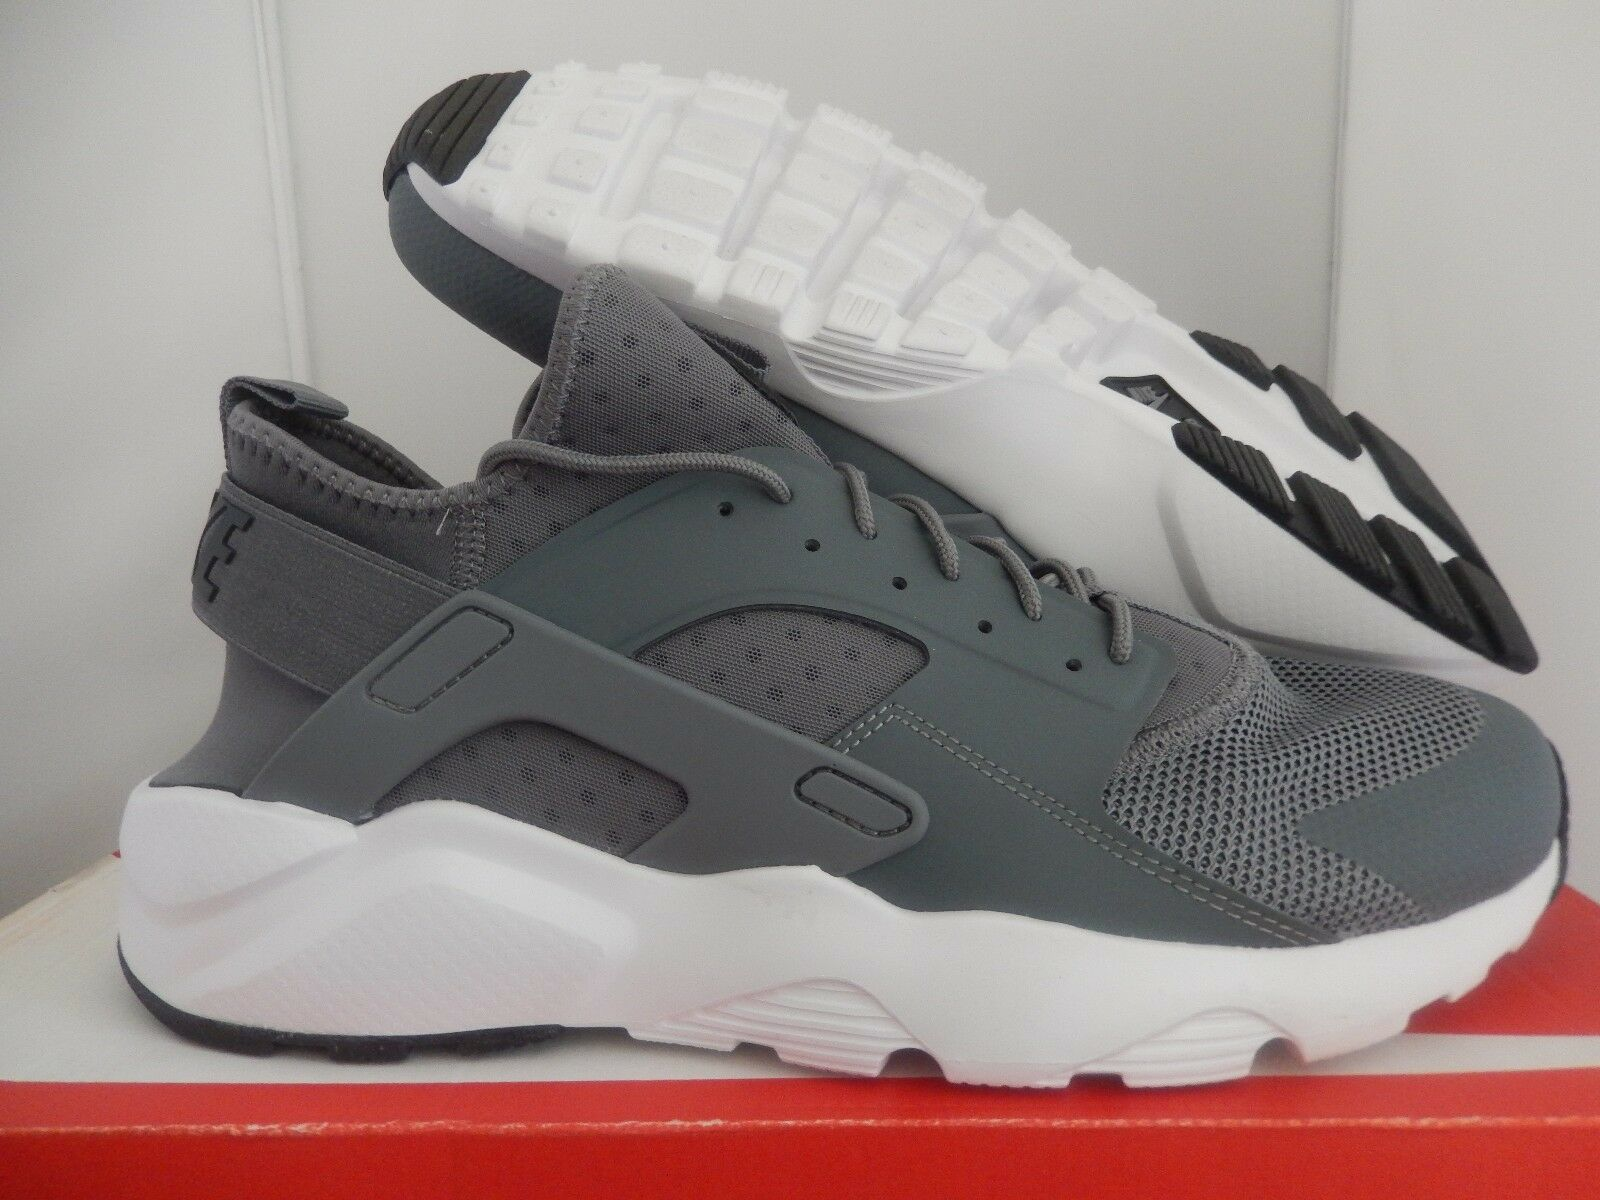 MENS NIKE AIR HUARACHE RUN ULTRA COOL GREY-BLACK-WHITE SZ 9.5 [819685-011]